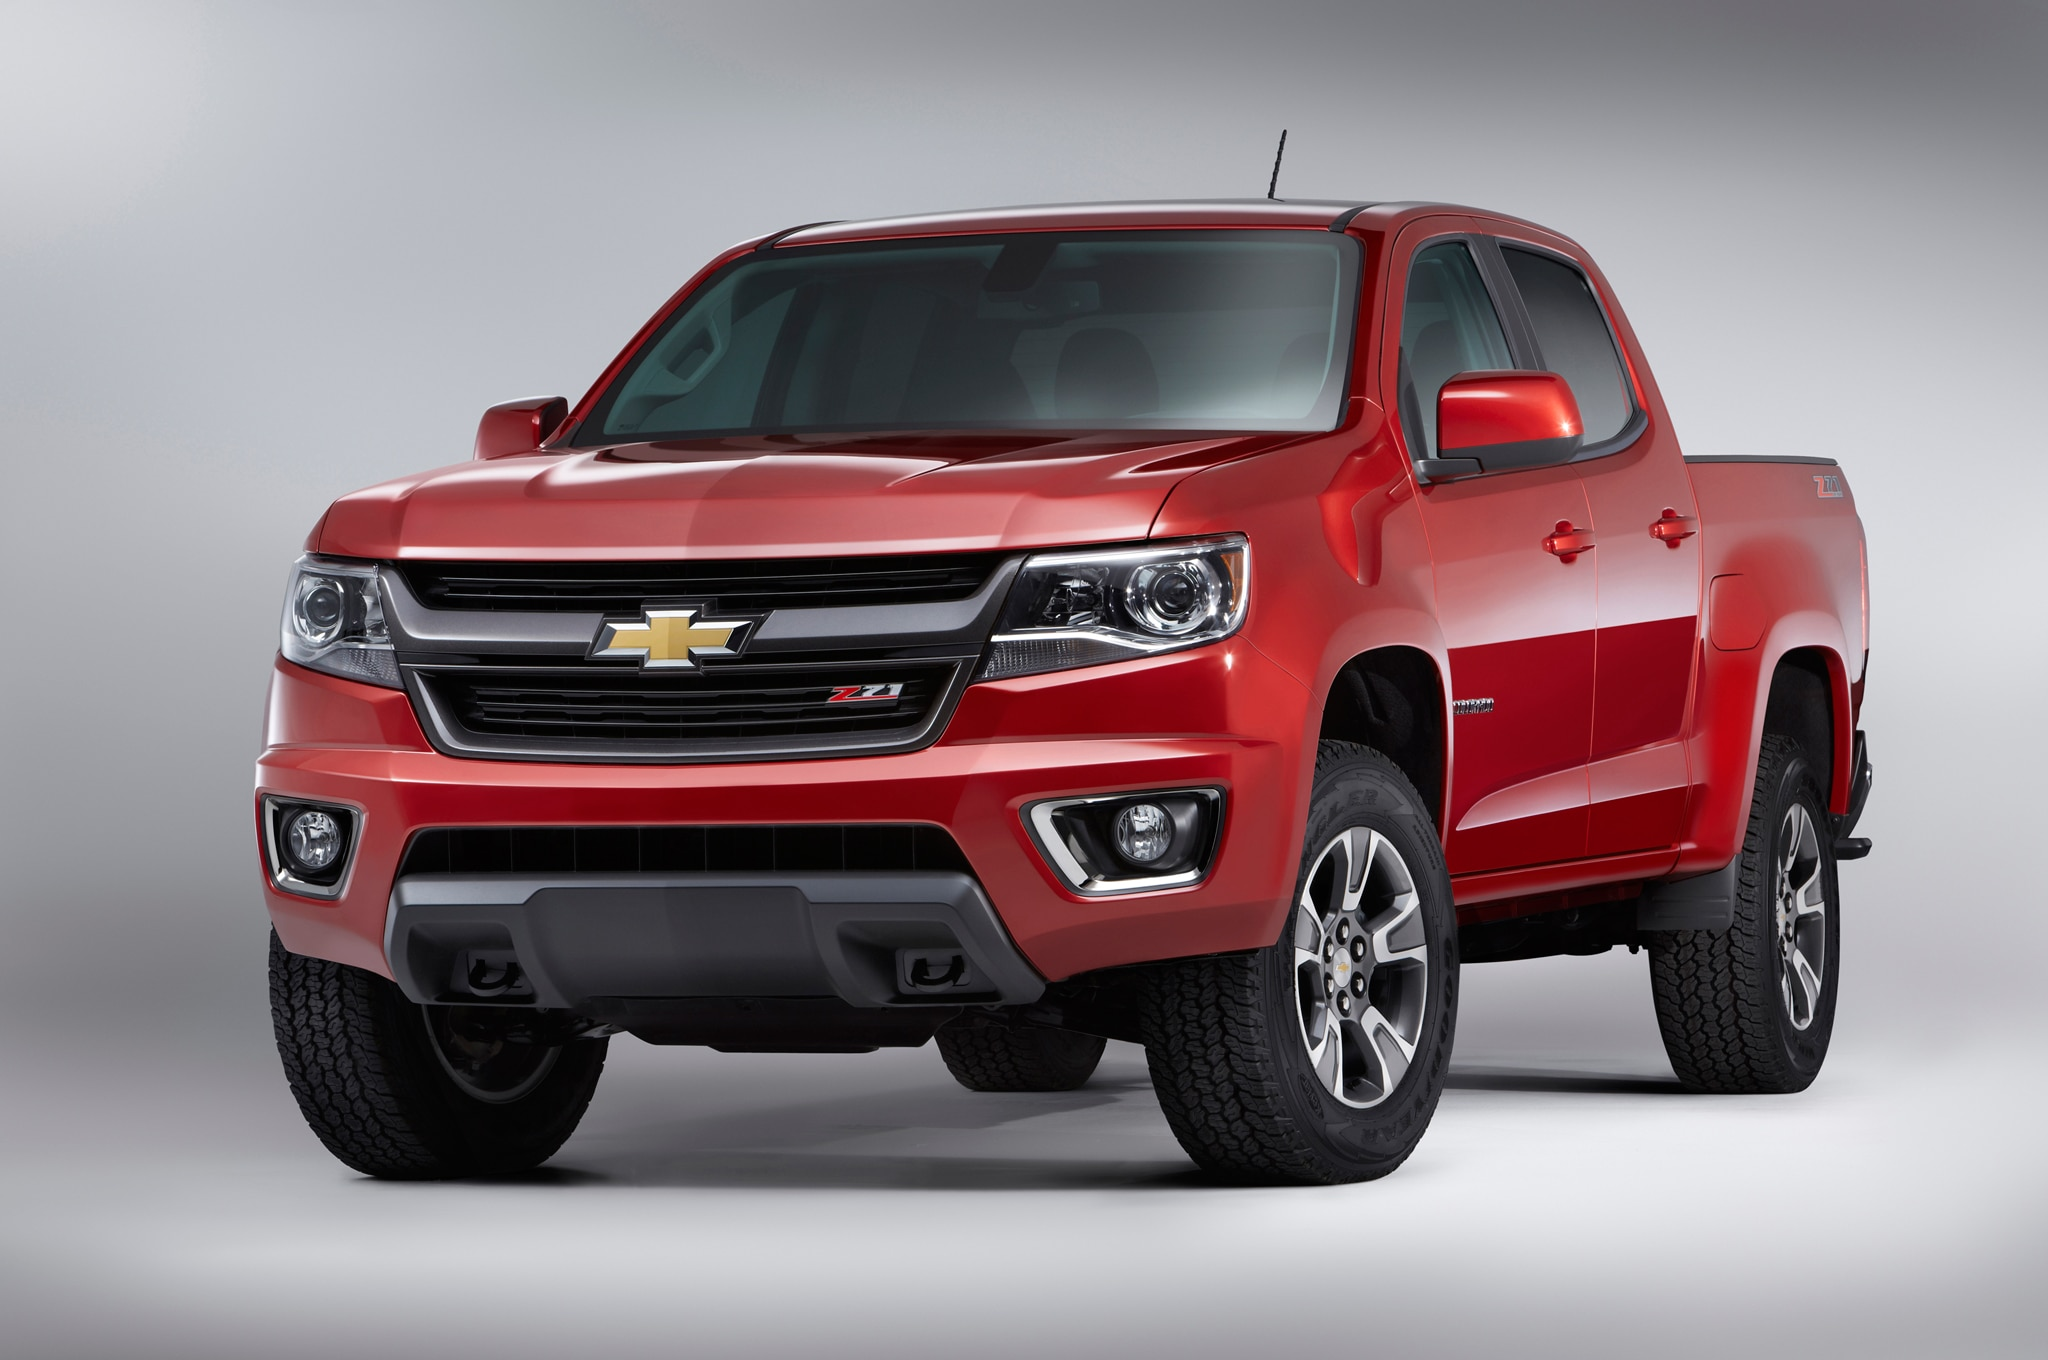 2015 Chevrolet Colorado front end